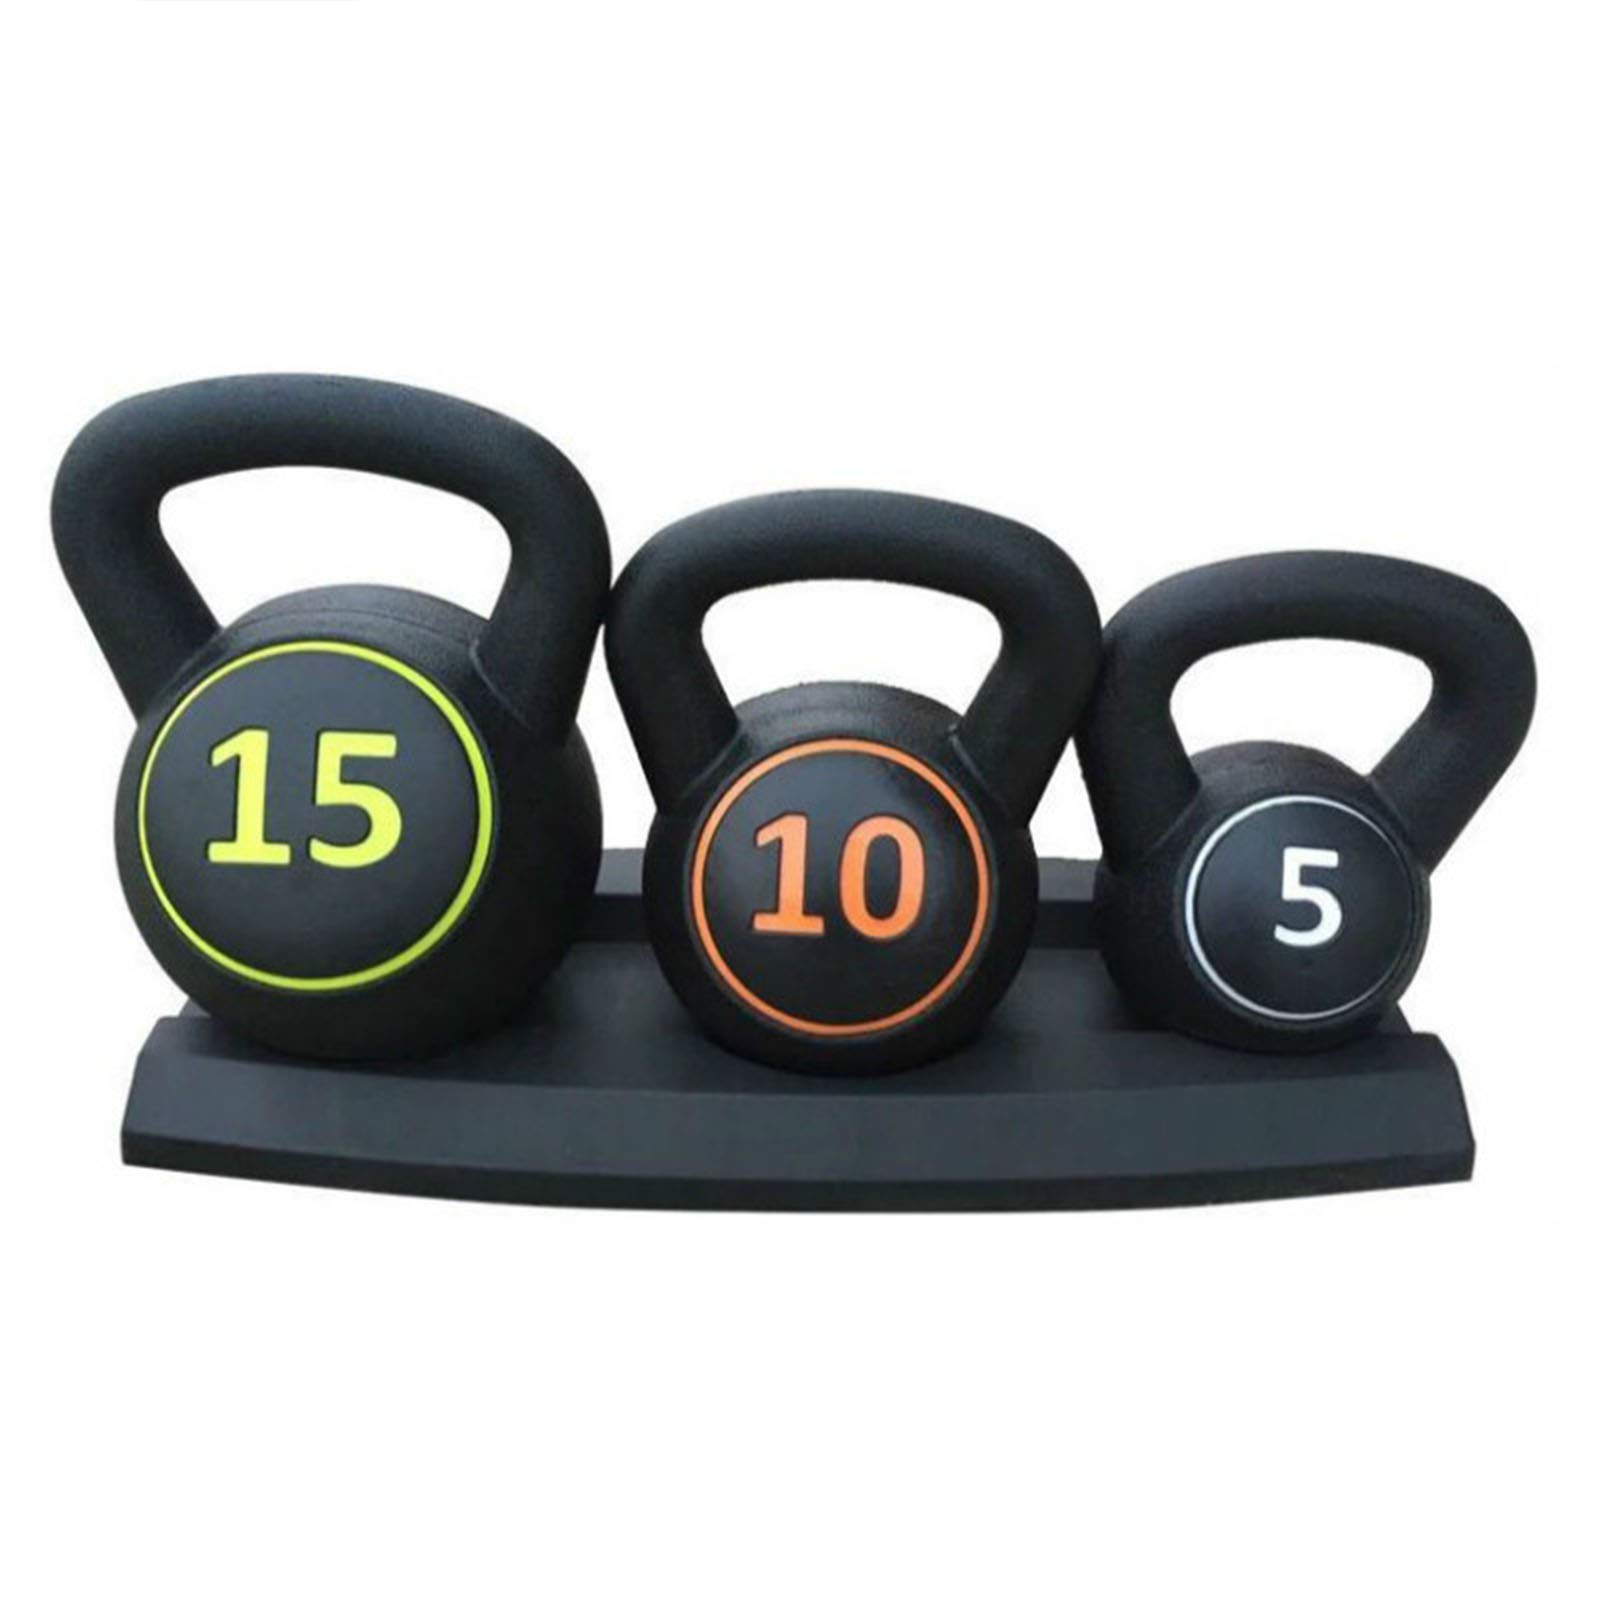 Coldshine 3 Pce Vinyl Kettlebell Weight Set & Stand Home Gym Fitness Equipment/Strength Training 5lbs,10lbs,15lbs (2.2kg, 4.5kg, 6.8 kg)